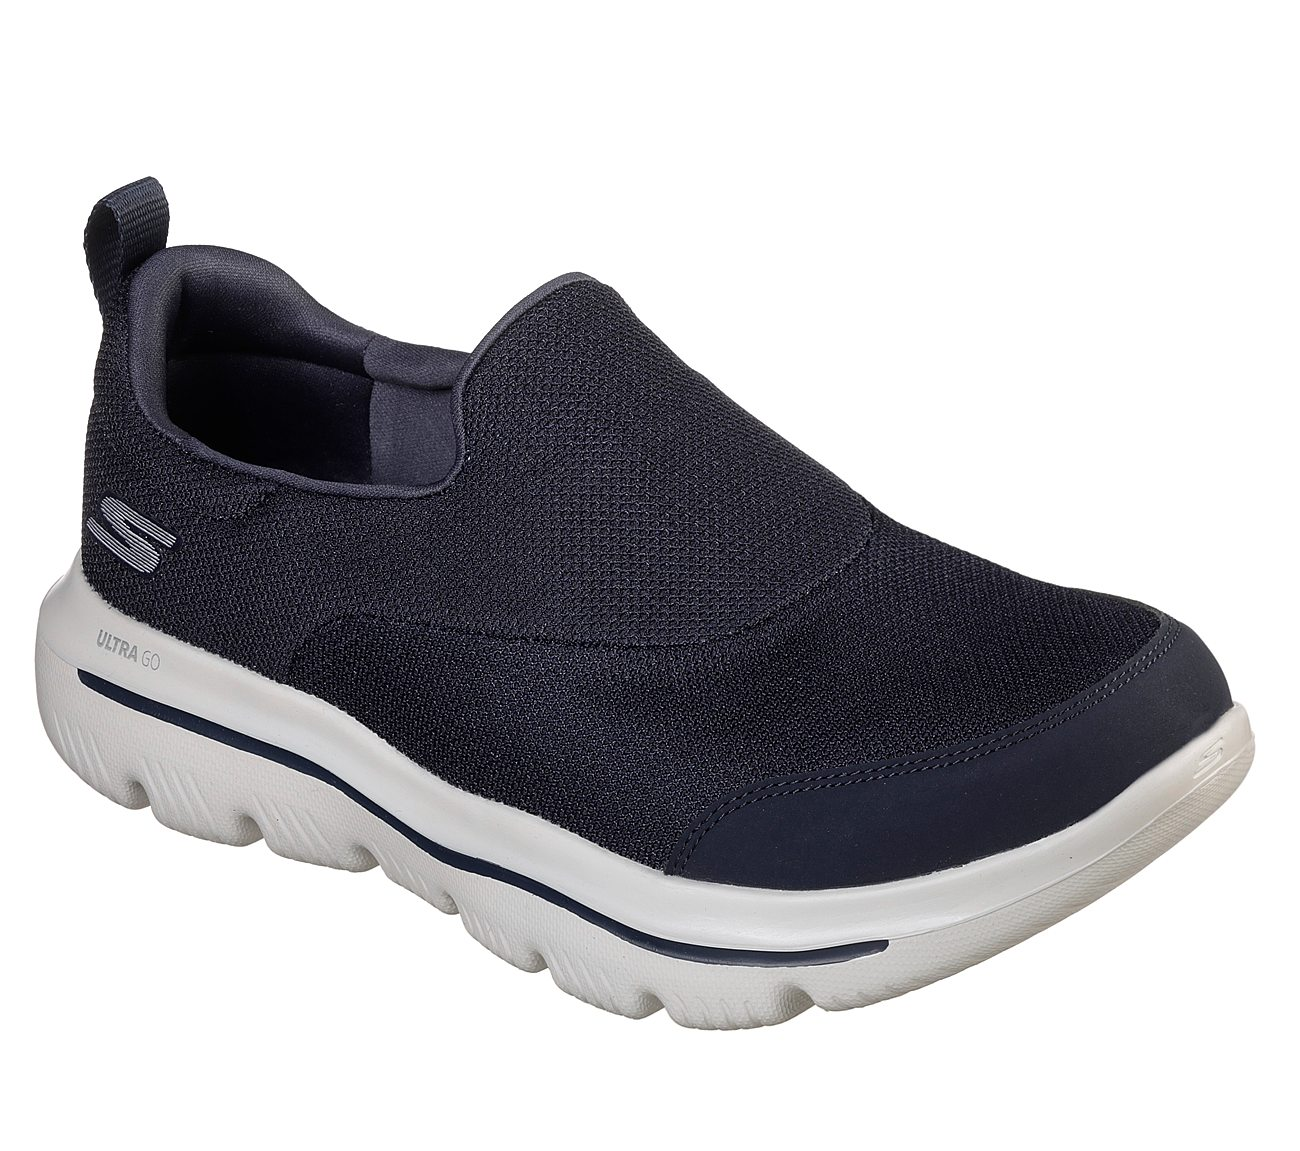 Men's Skechers GOwalk Evolution Ultra - Impeccable